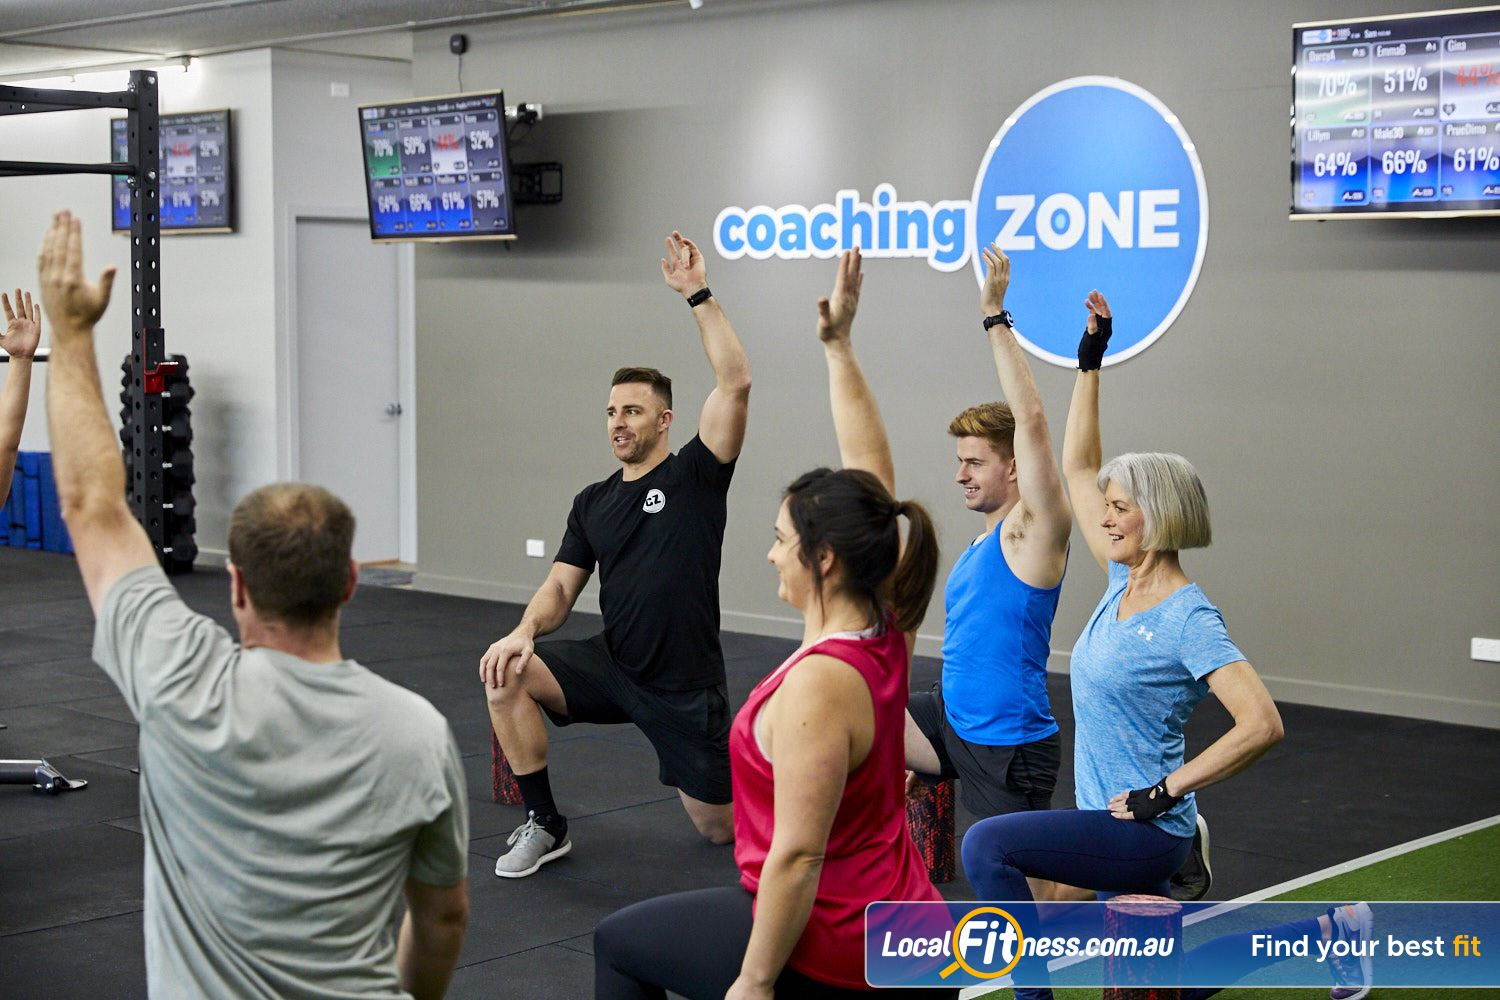 Coaching Zone Ferntree Gully Our workouts are complete including warm-ups, intense workouts and reviews.